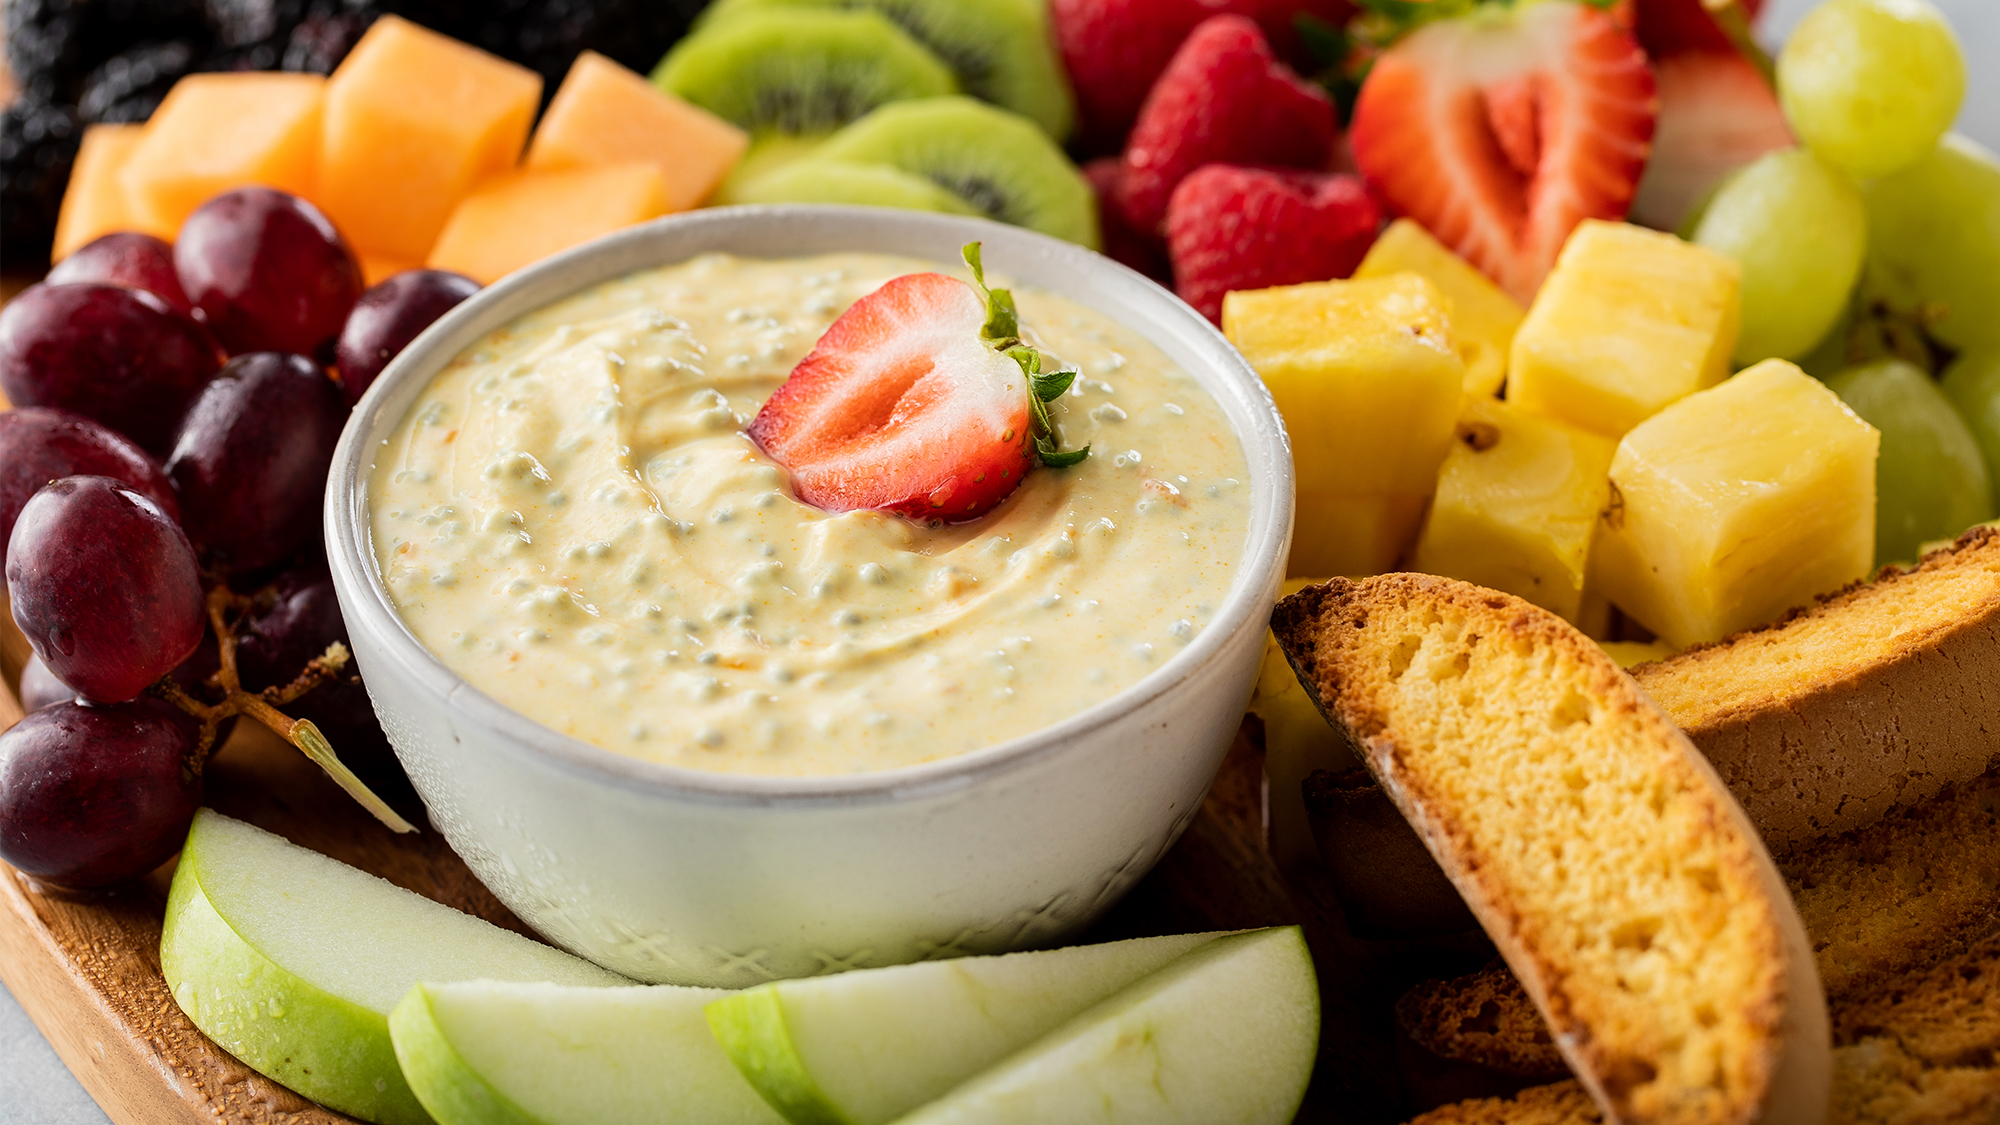 McCormick Apricot Basil Seed Yogurt Dip with Turmeric and Ginger